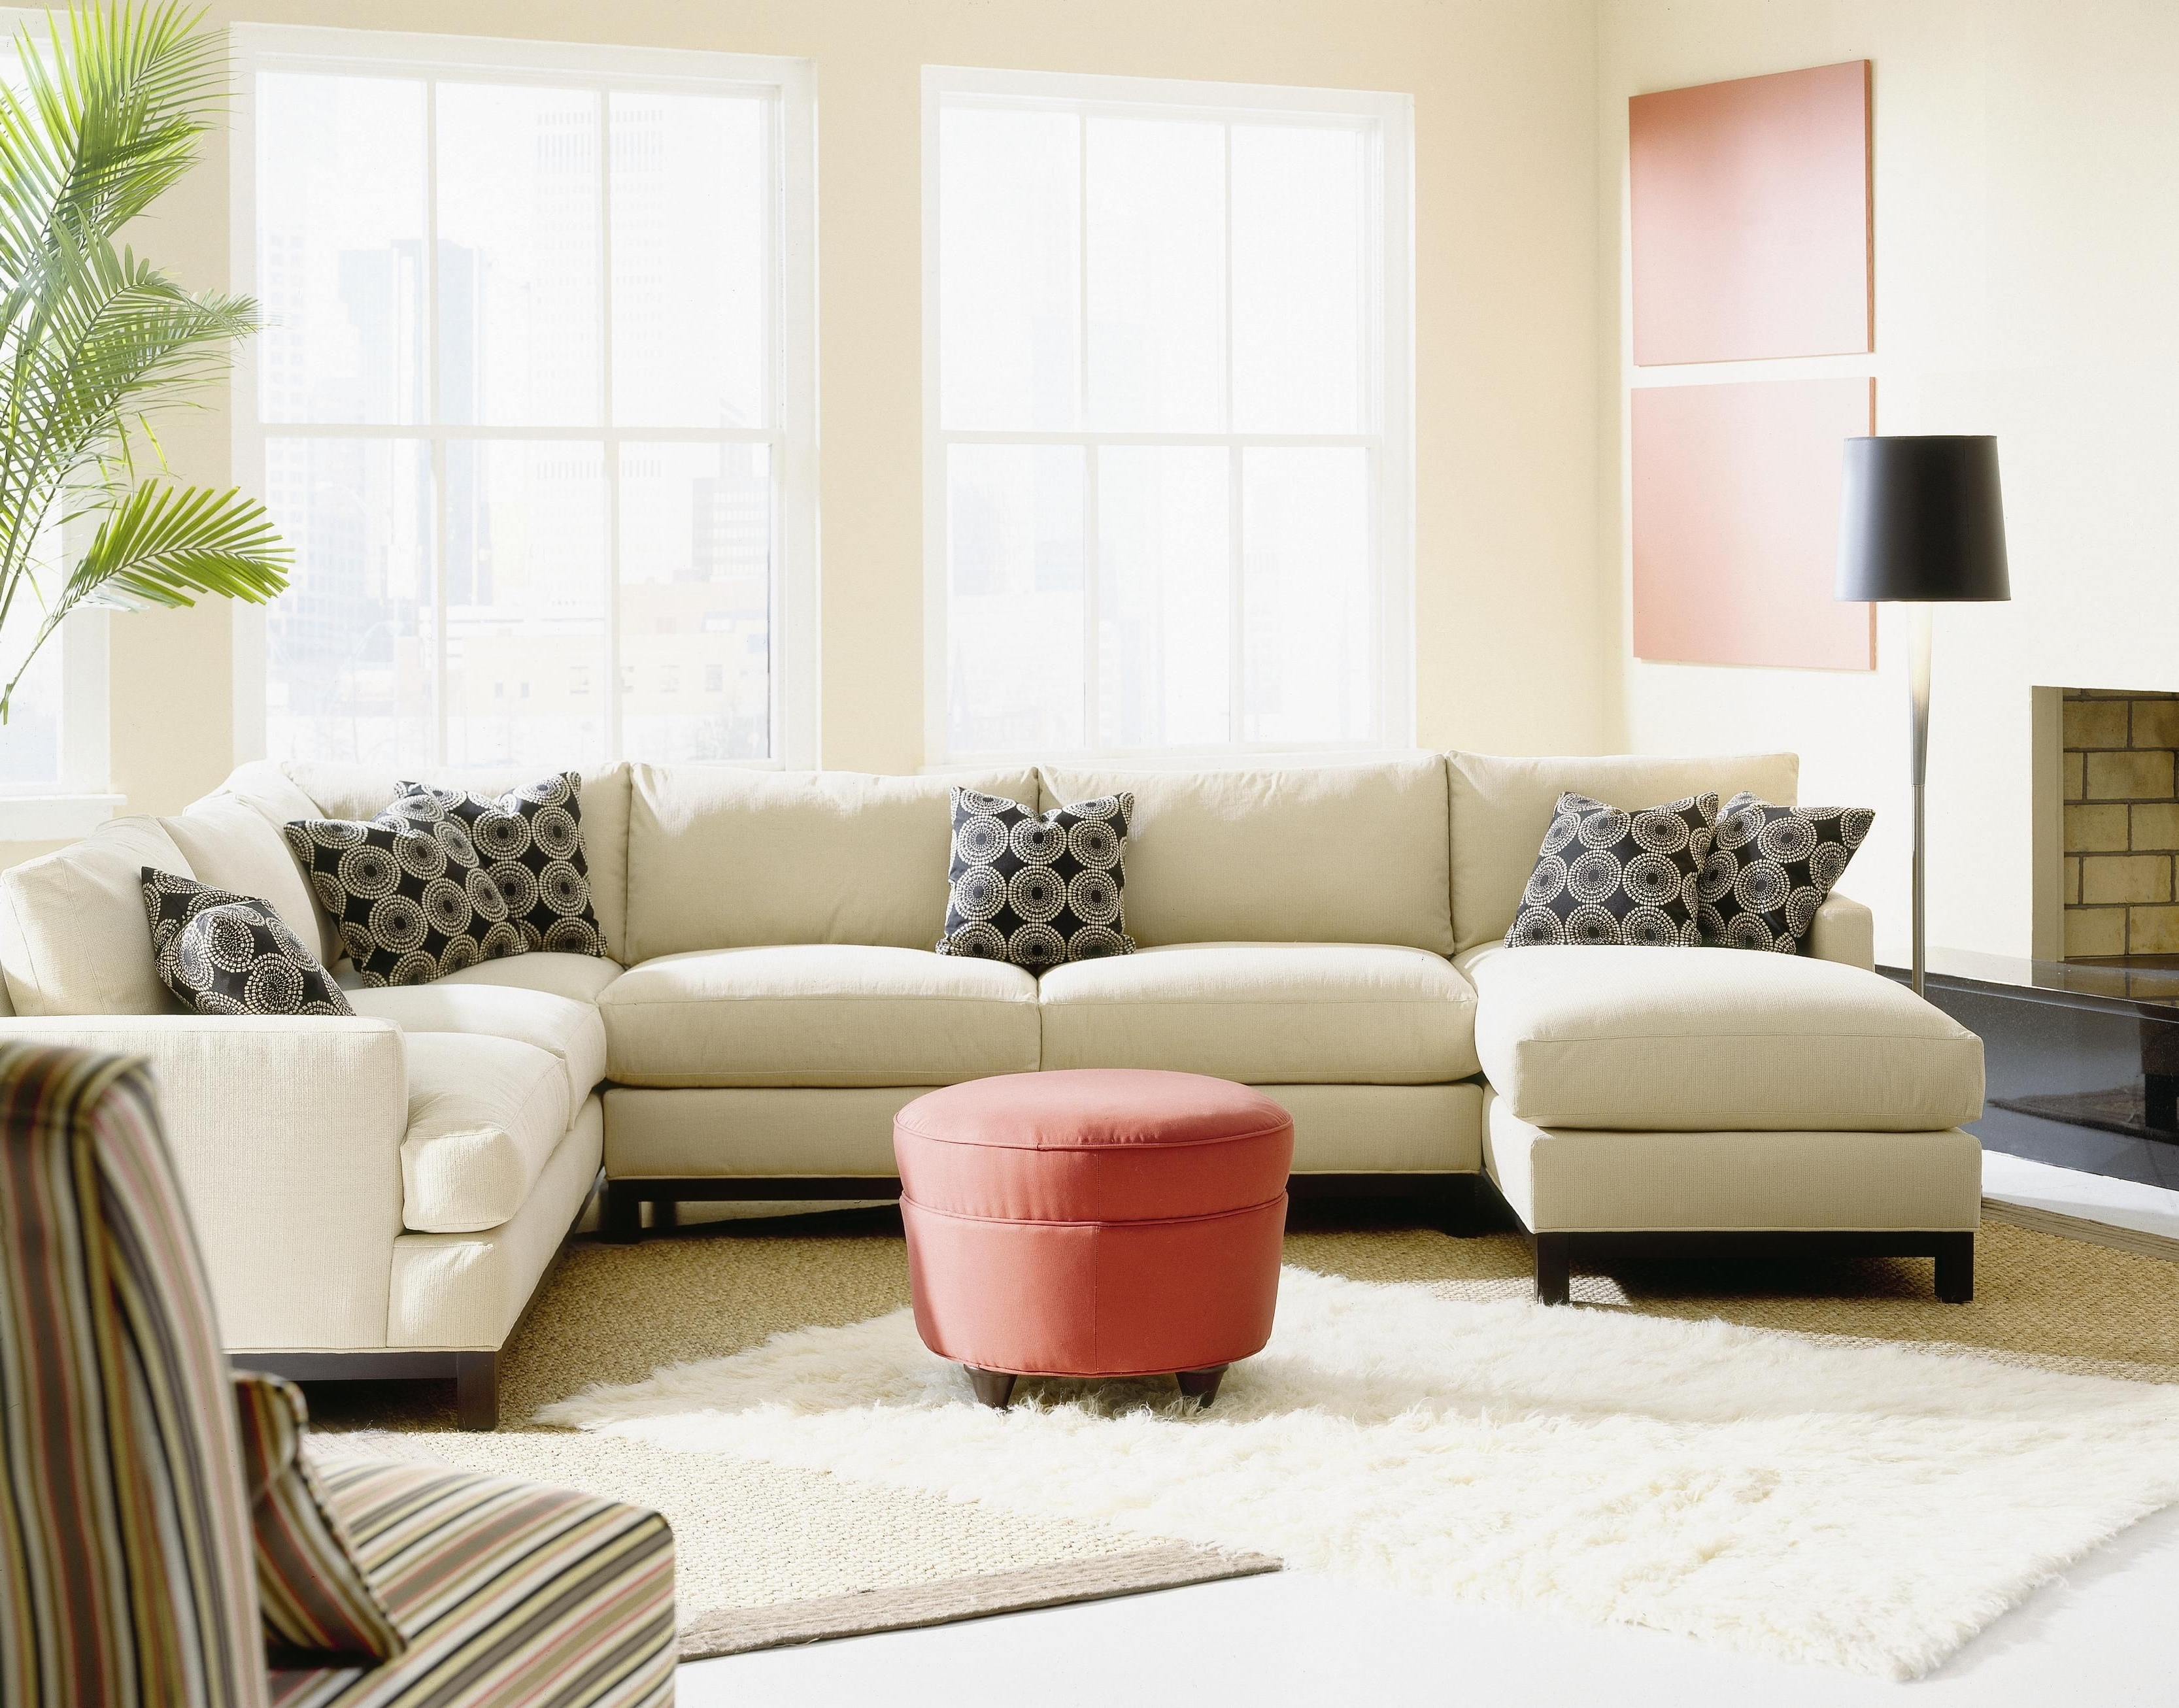 Crisp Contemporary Modular Sectional Sofa Can Be Rearranged To Fit Inside Latest Sectional Sofas That Can Be Rearranged (View 2 of 15)